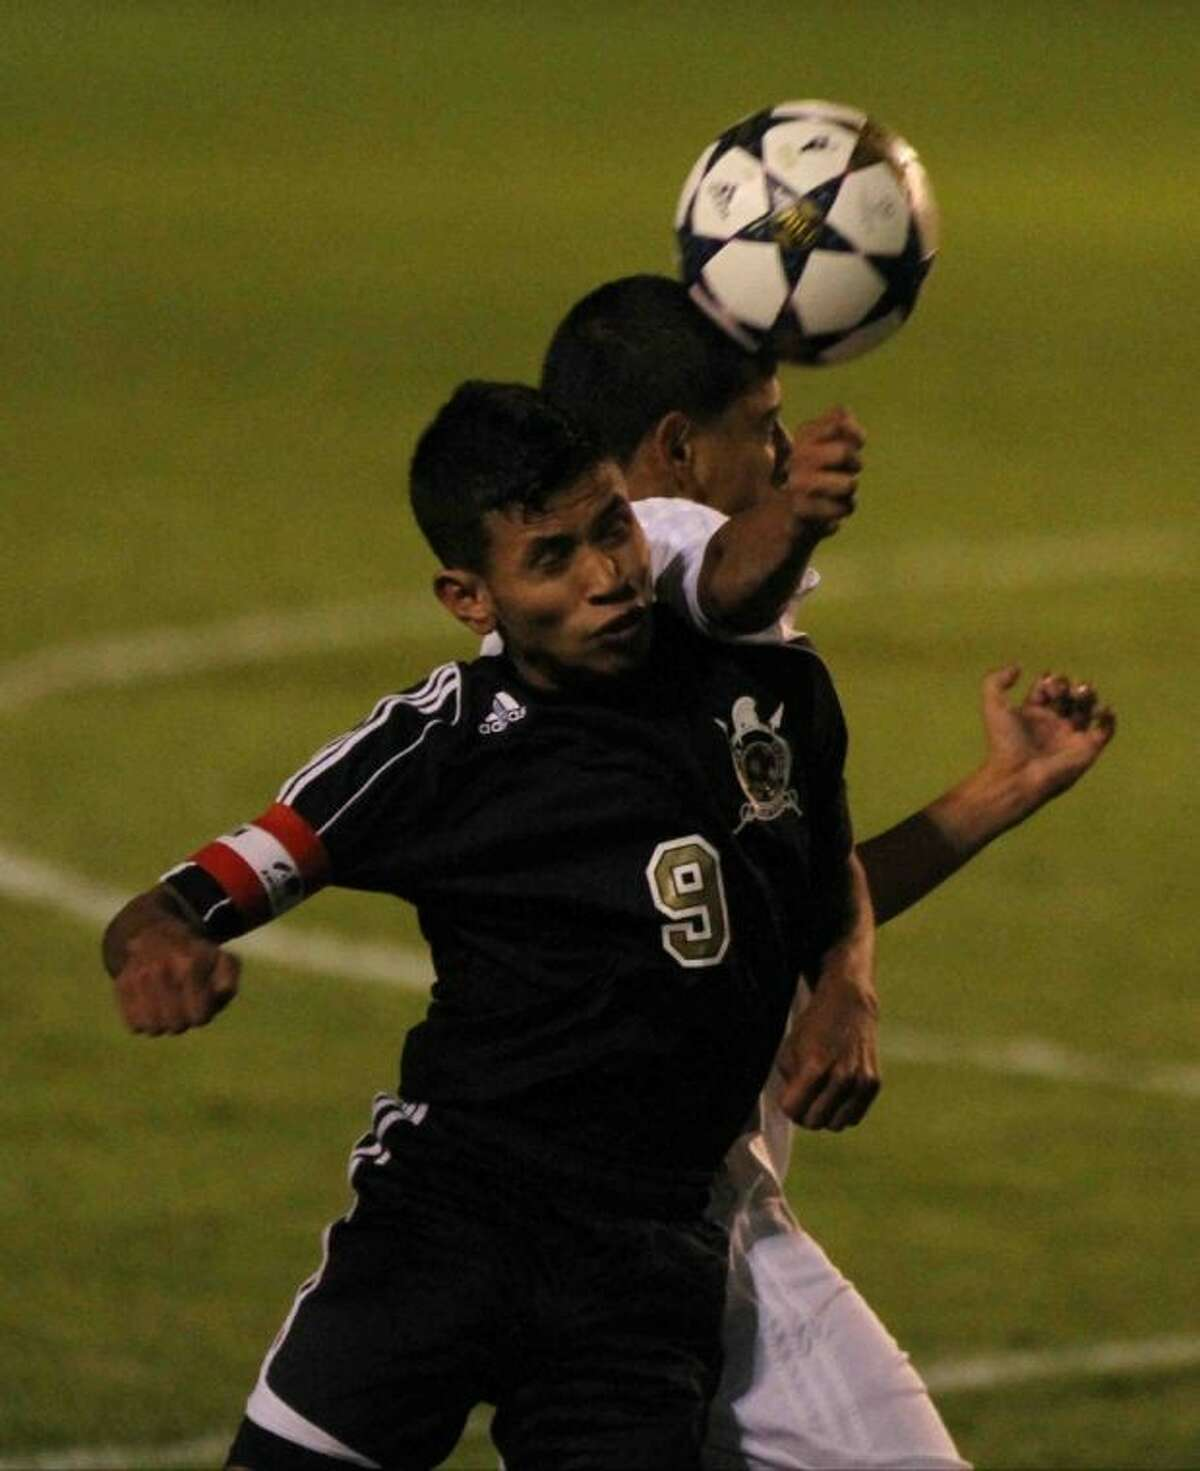 Porter's Brayan Matute goes up for a header during a District 39-4A match Wednesday at Berton A. Yates Stadium. To view or purchase this photo and others like it, visit HCNpics.com.